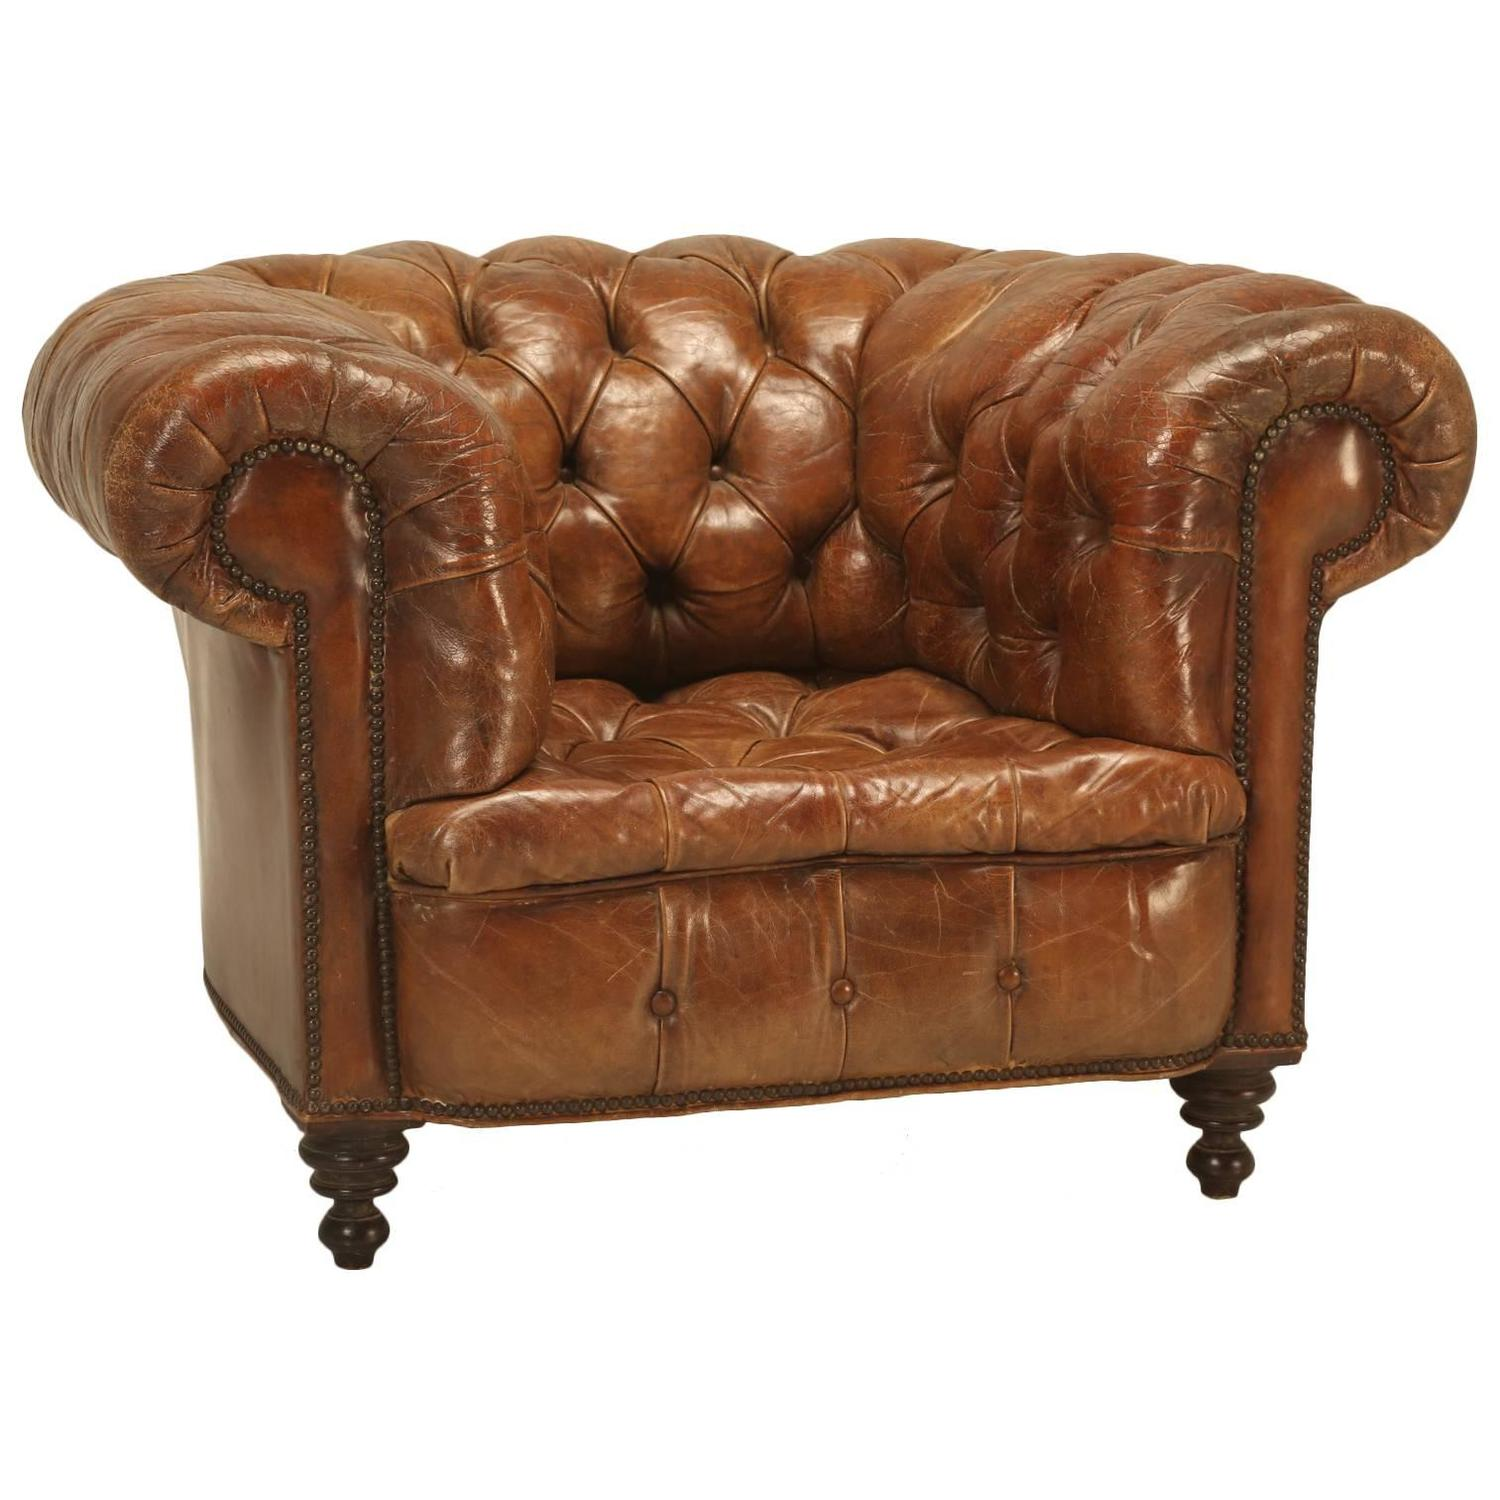 Leather Chesterfield Chair Antique Chesterfield Chair In Original Leather For Sale At